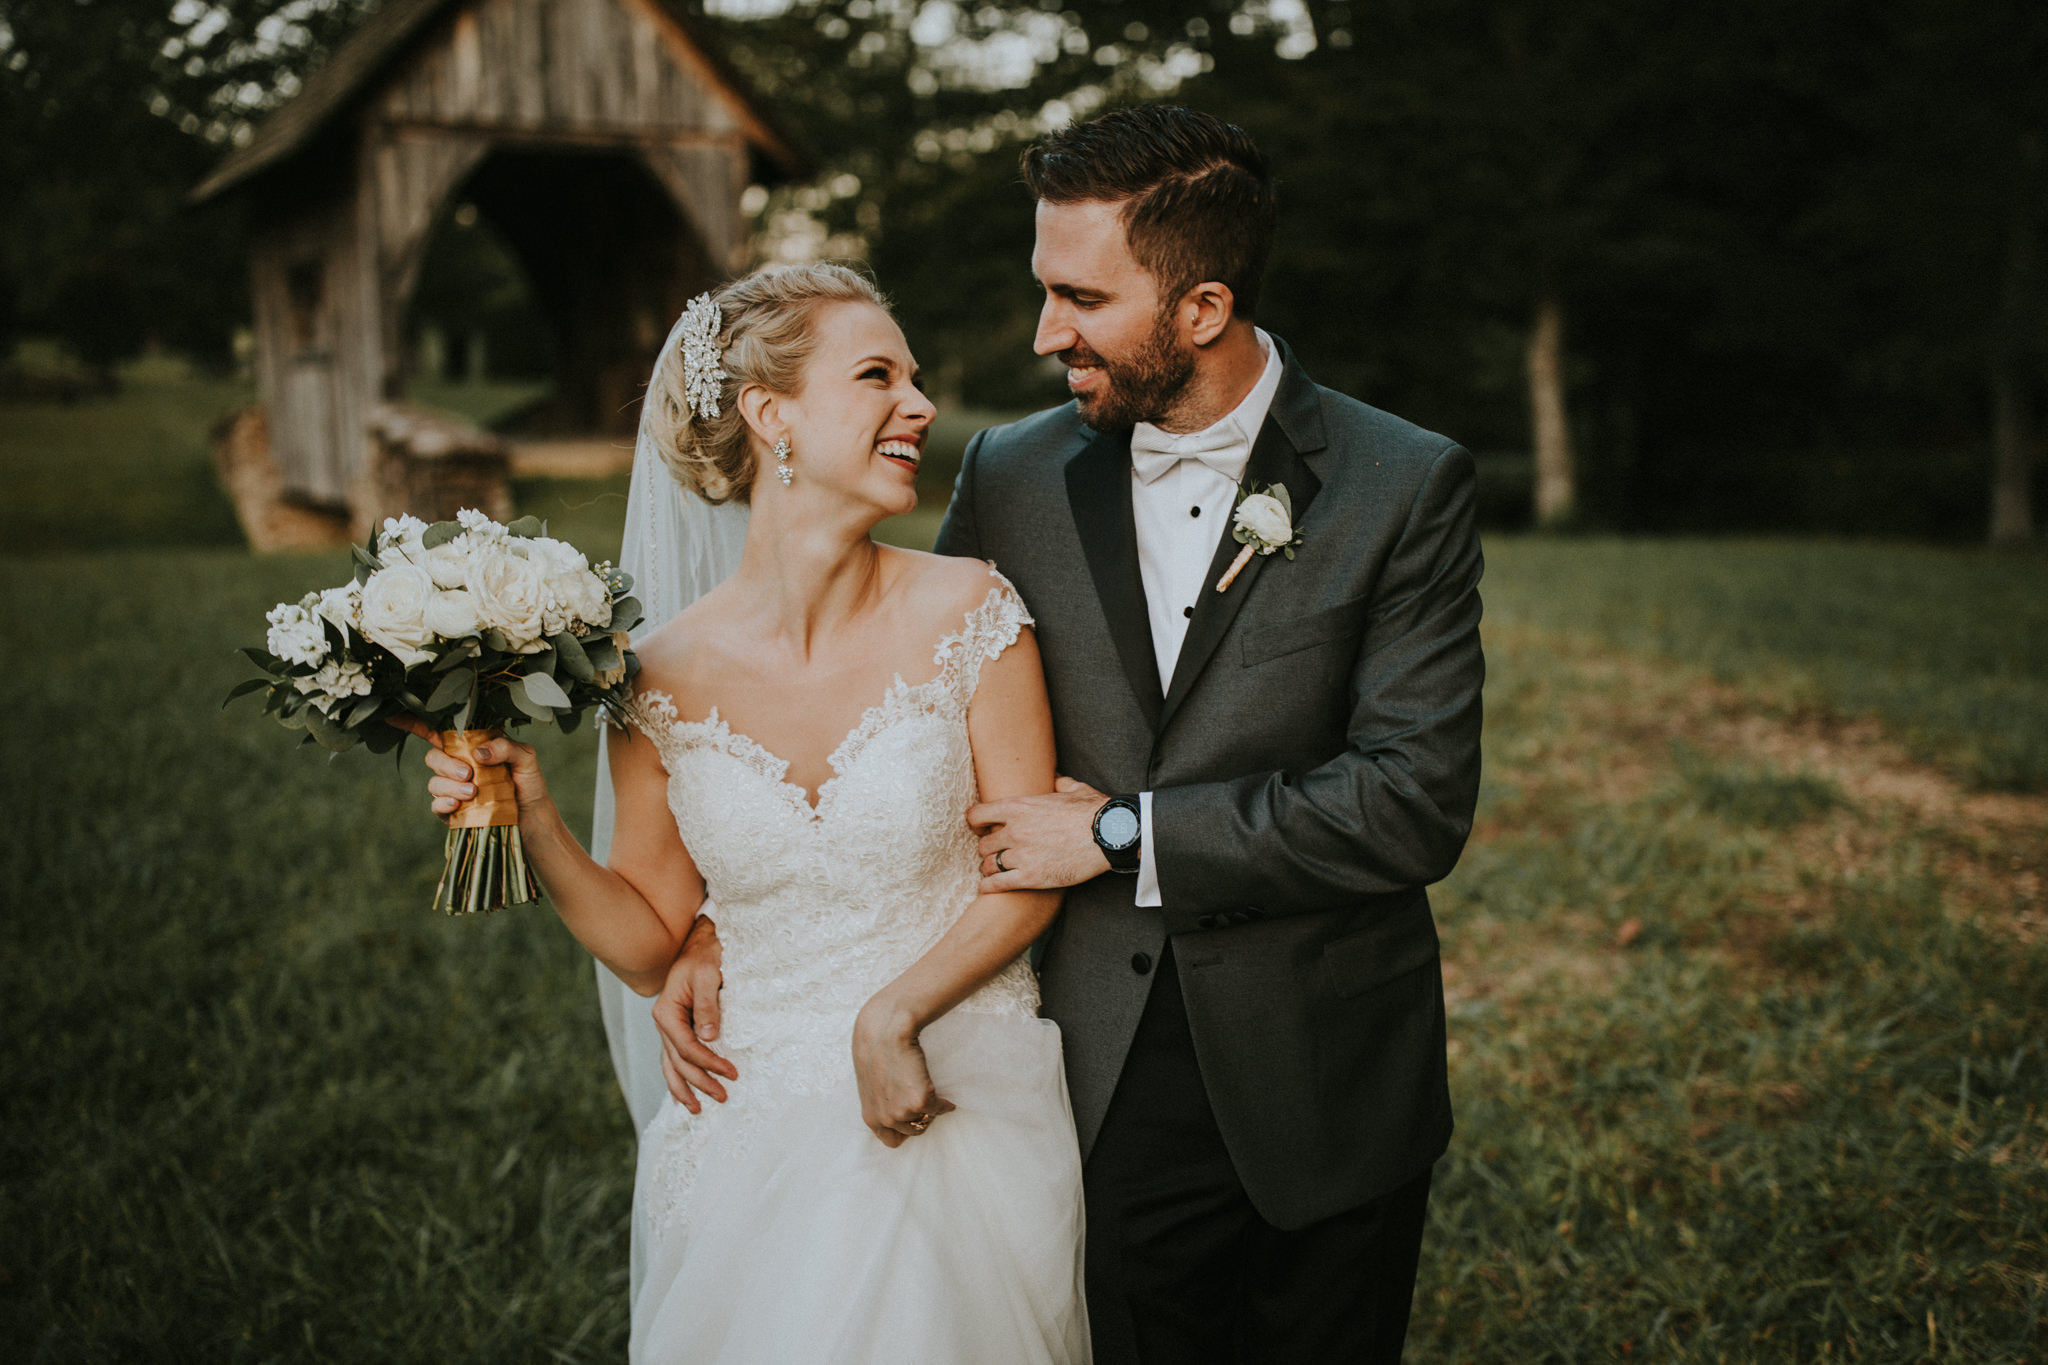 Wedding Photographer Fayetteville